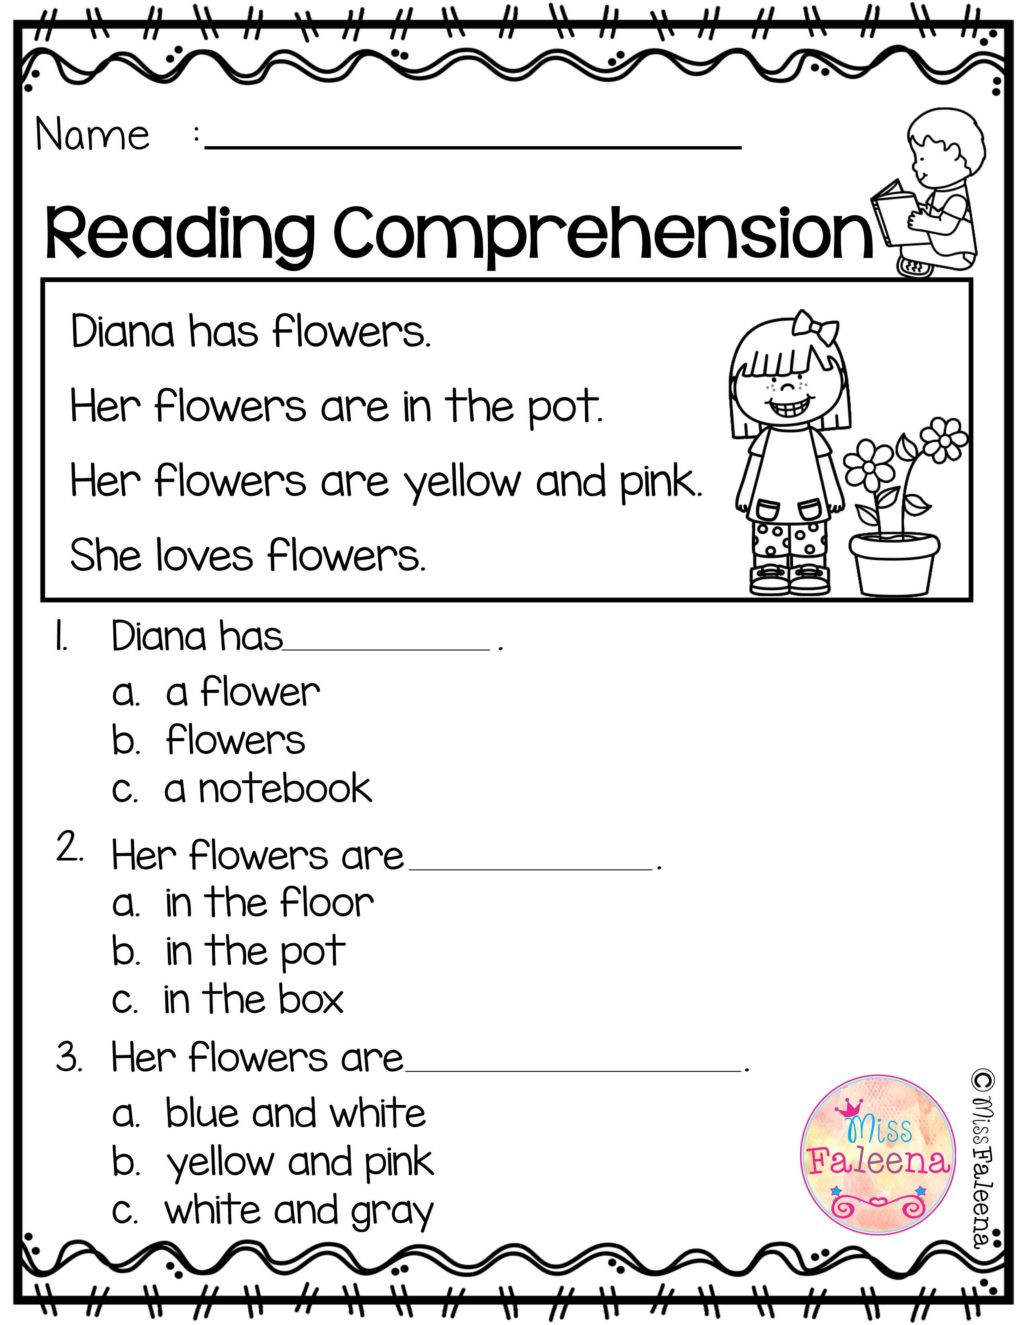 Preschool Reading Comprehension Worksheets Worksheet Free Reading Prehension Worksheet